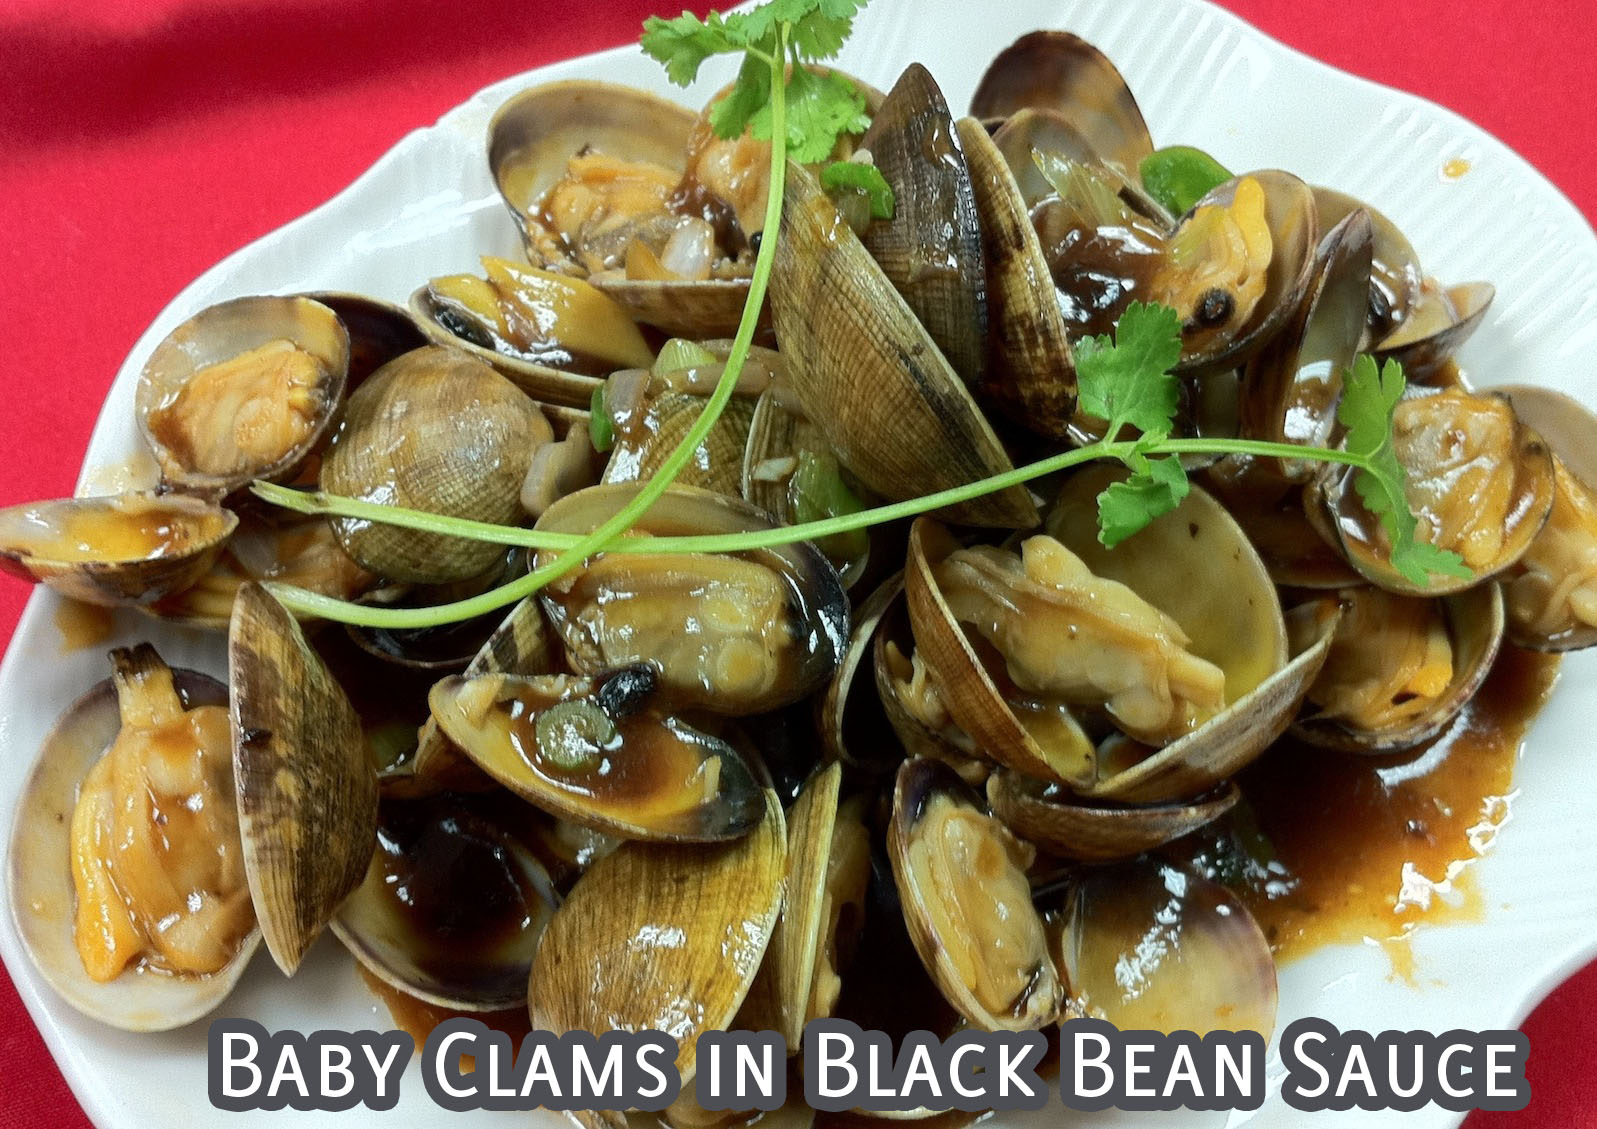 Baby Clams in Black Bean Sauce